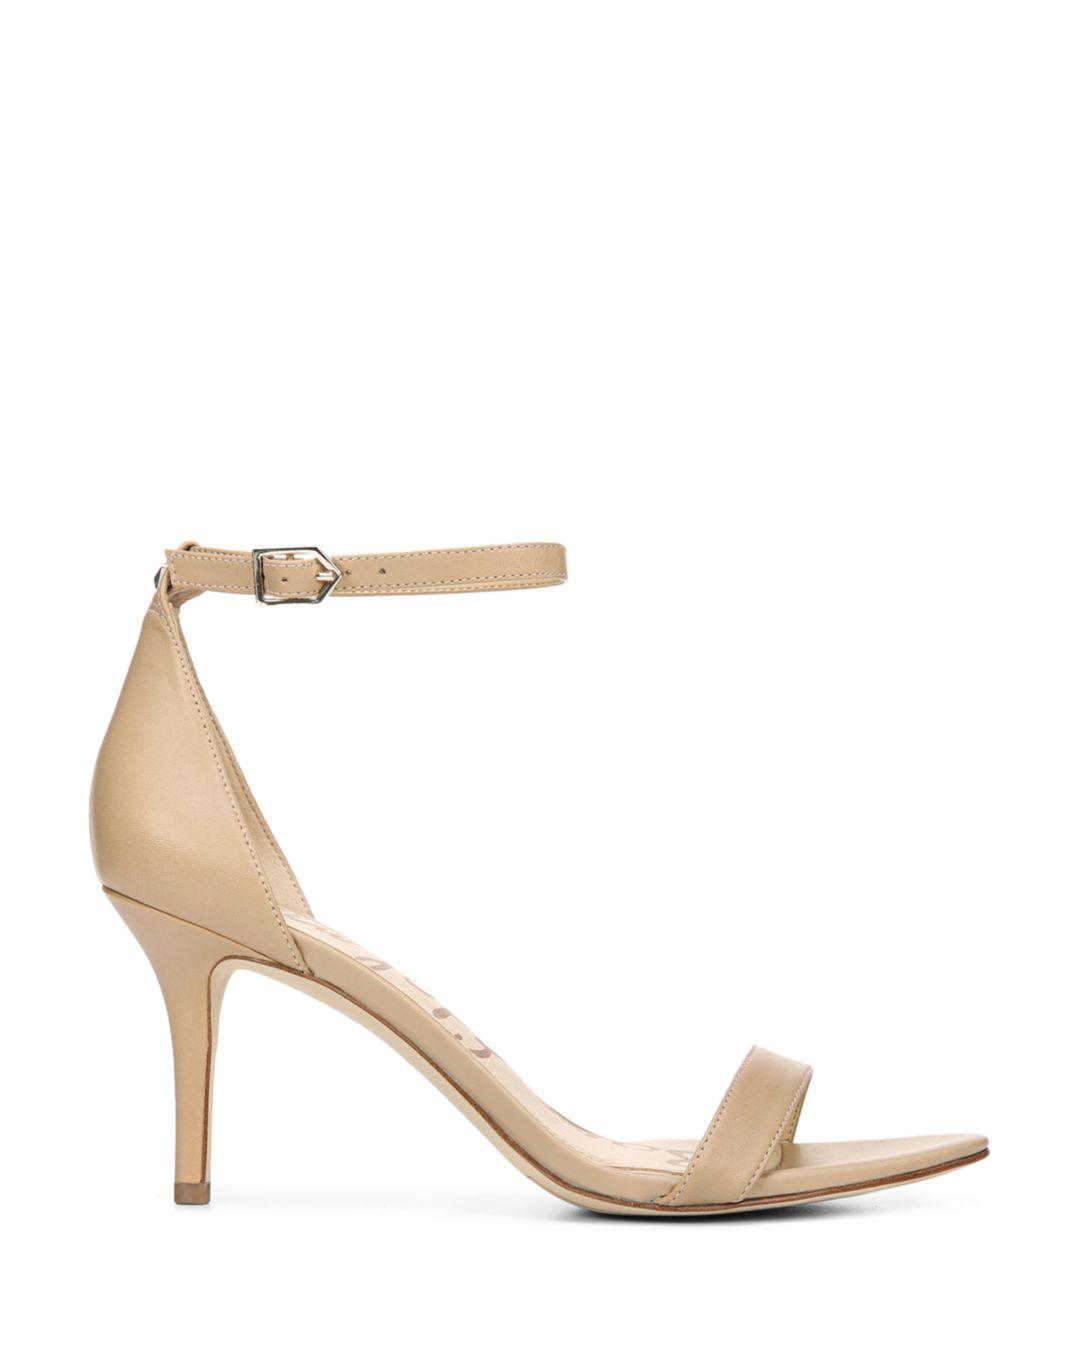 a0e48f566 Lyst - Sam Edelman Women s Patti Open Toe Leather High-heel Sandals in  Natural